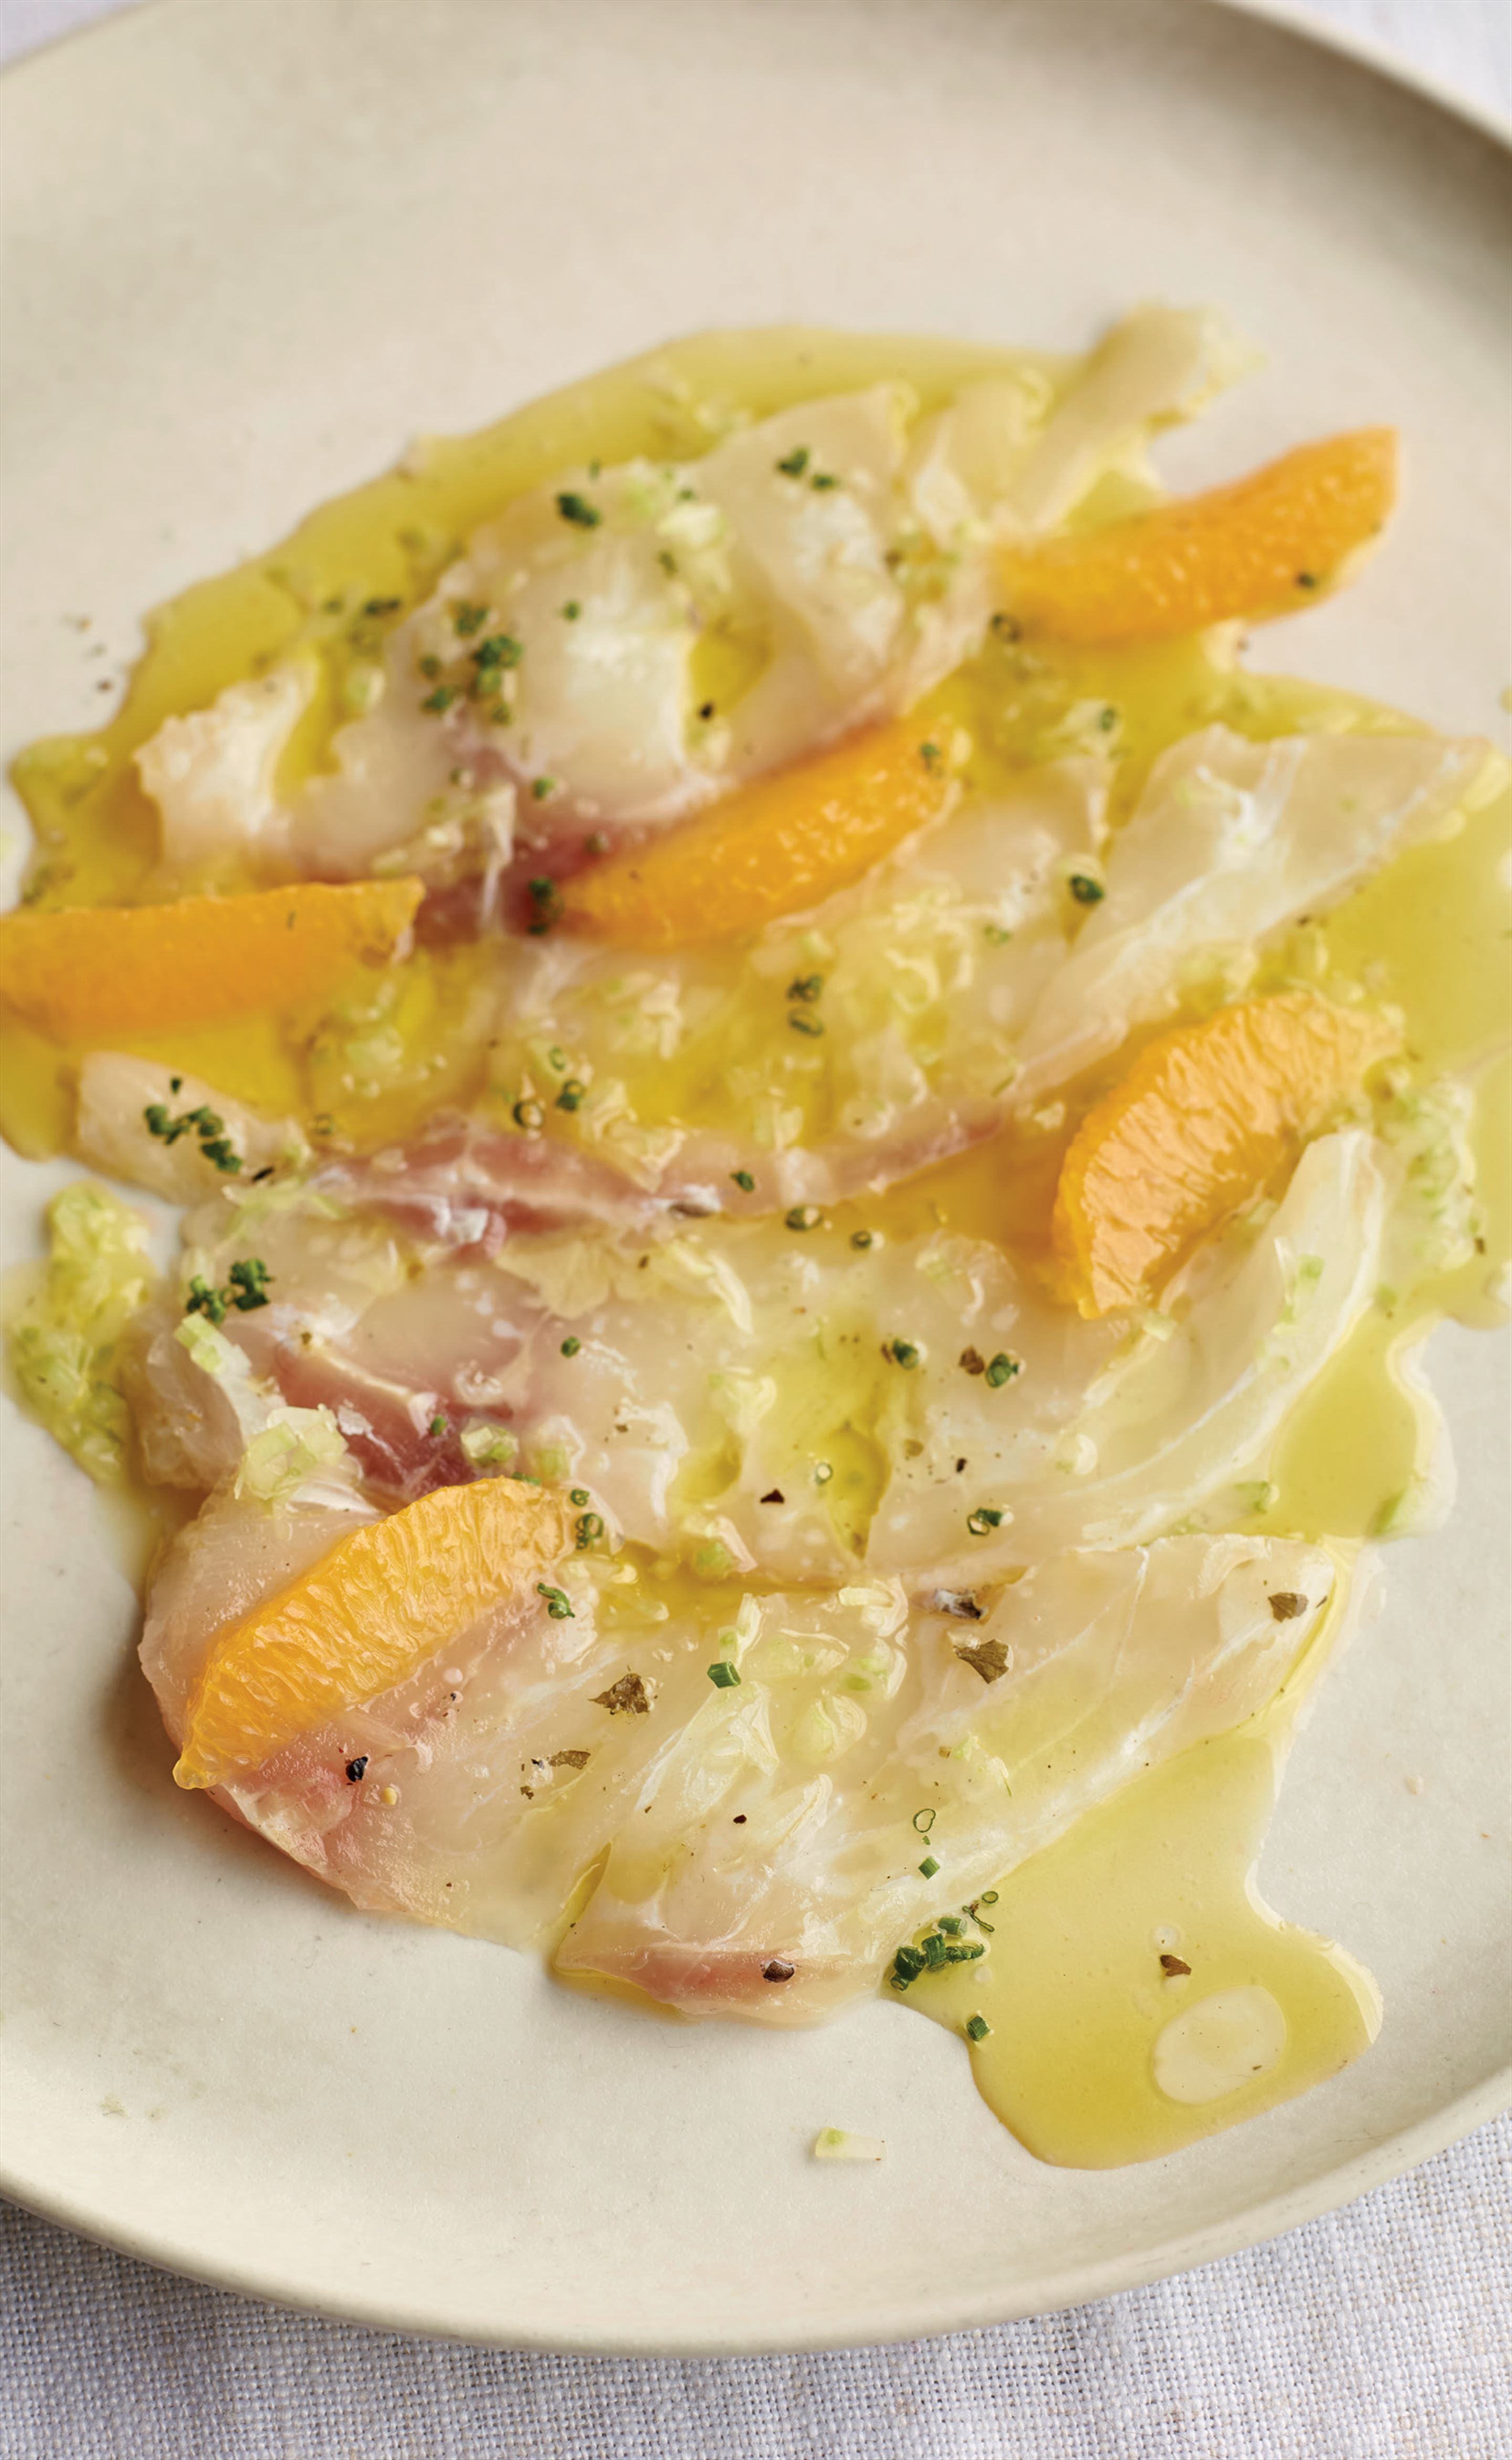 Raw sea bass with citrus and ginger